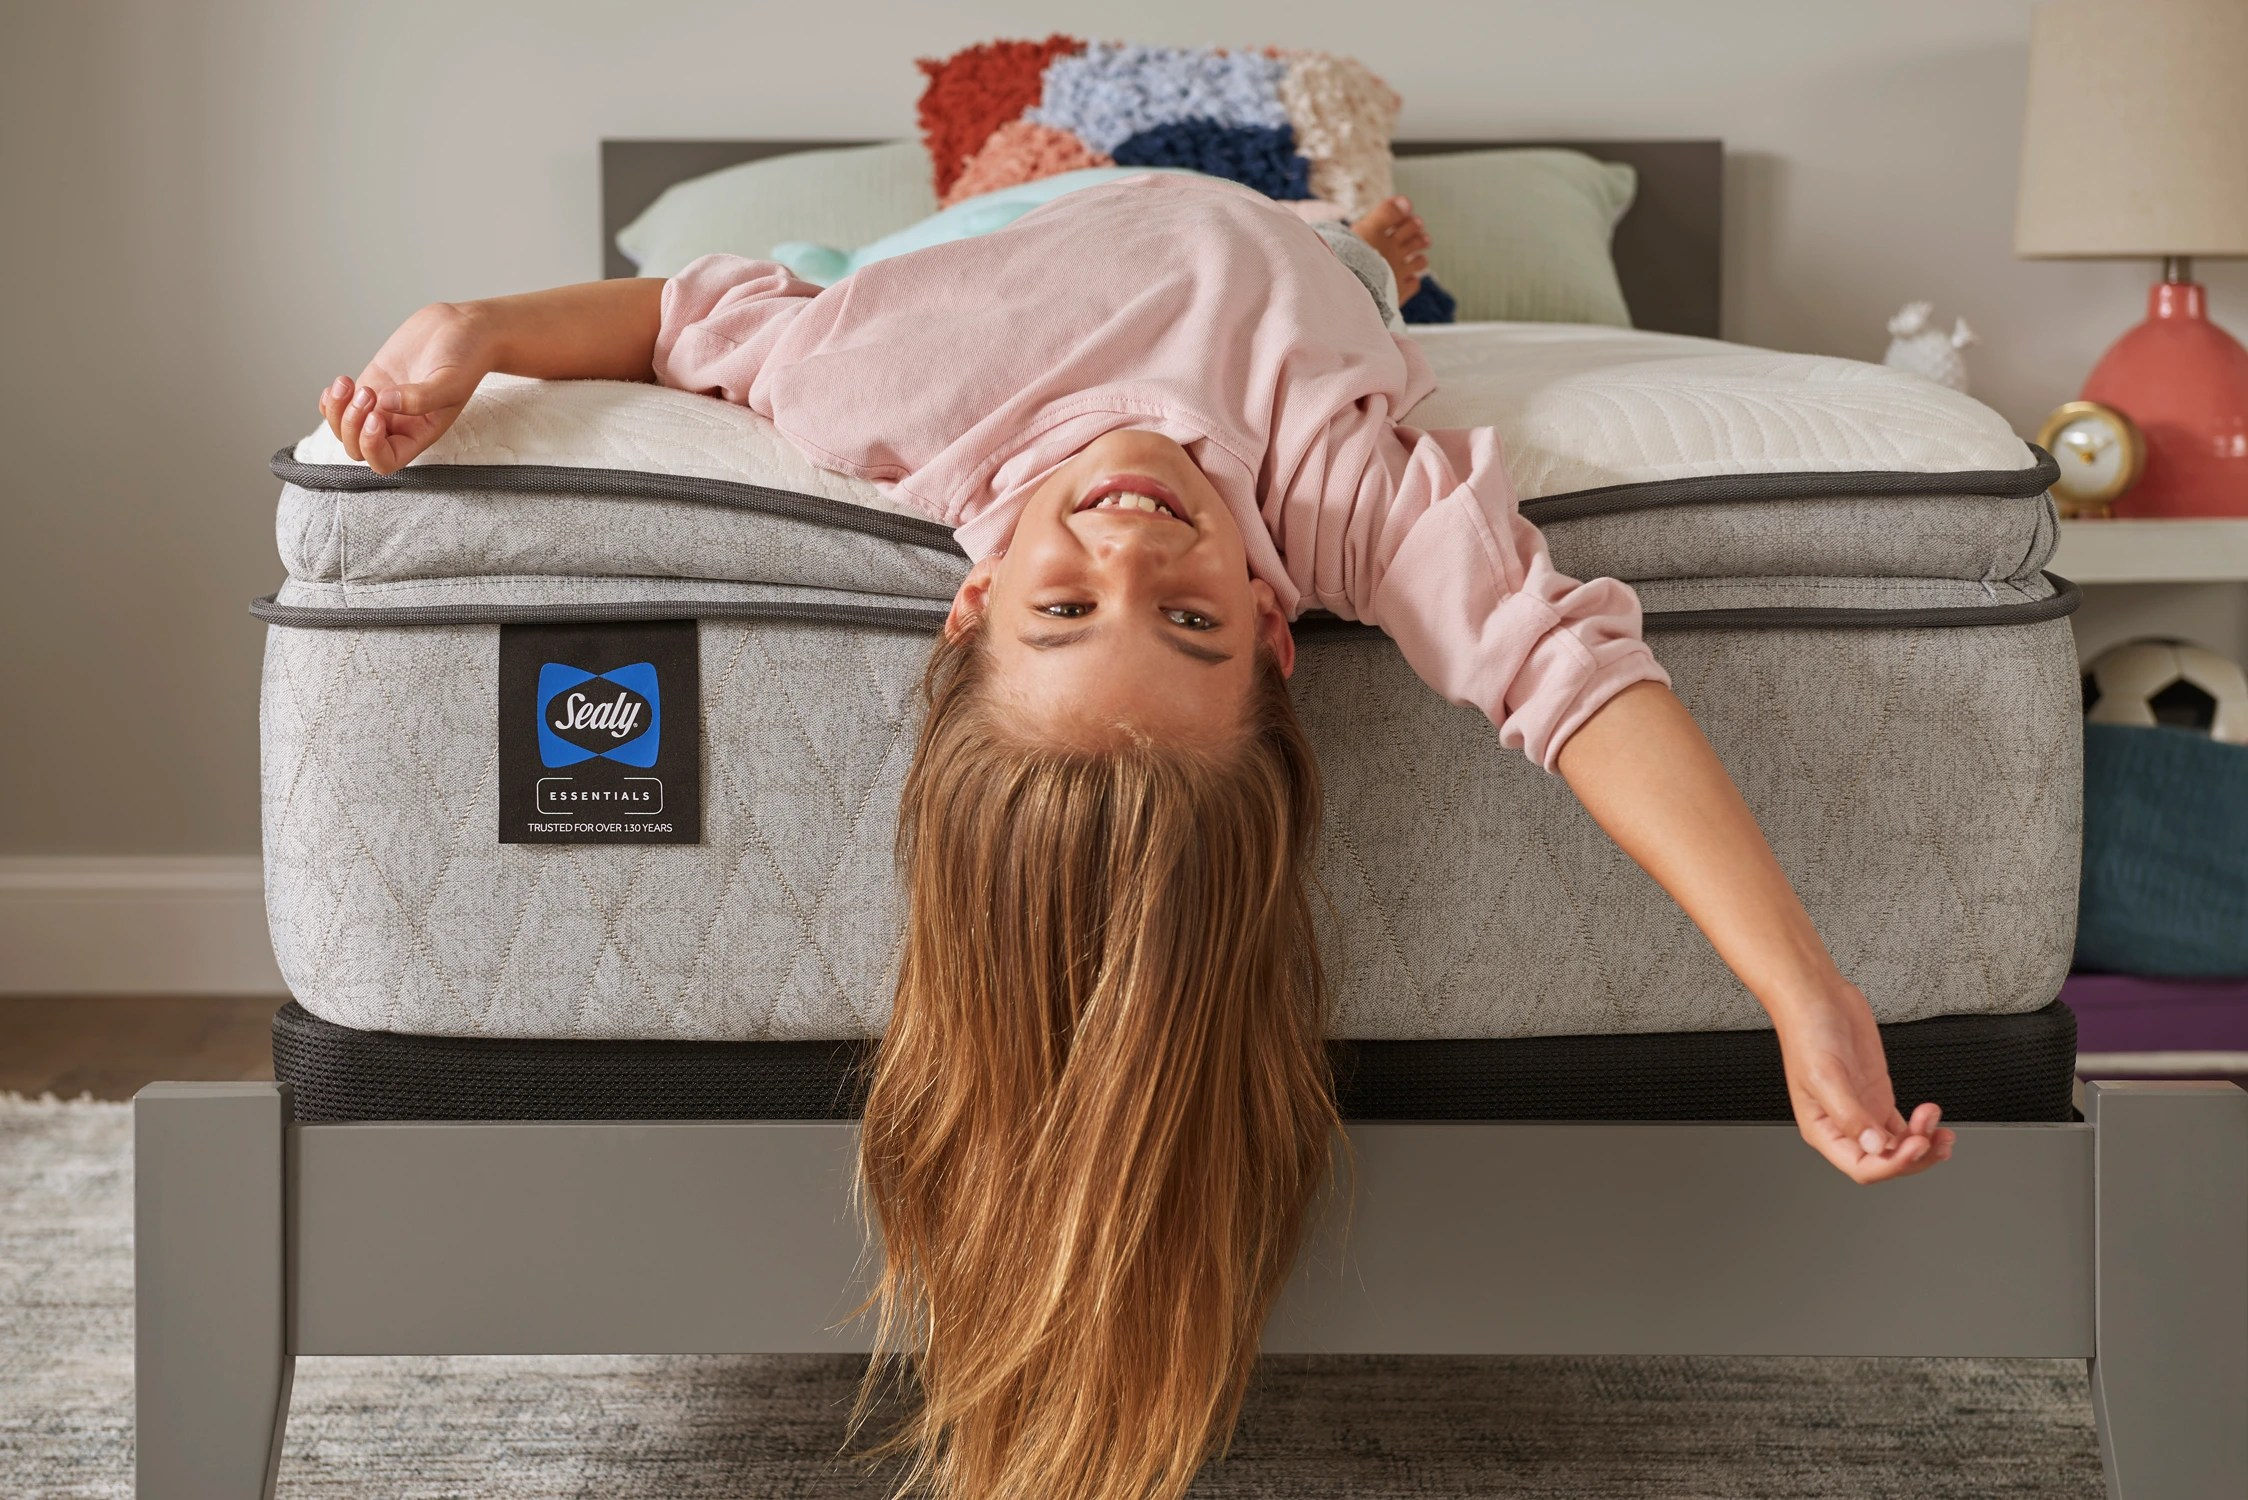 sealy mattresses in review how to find